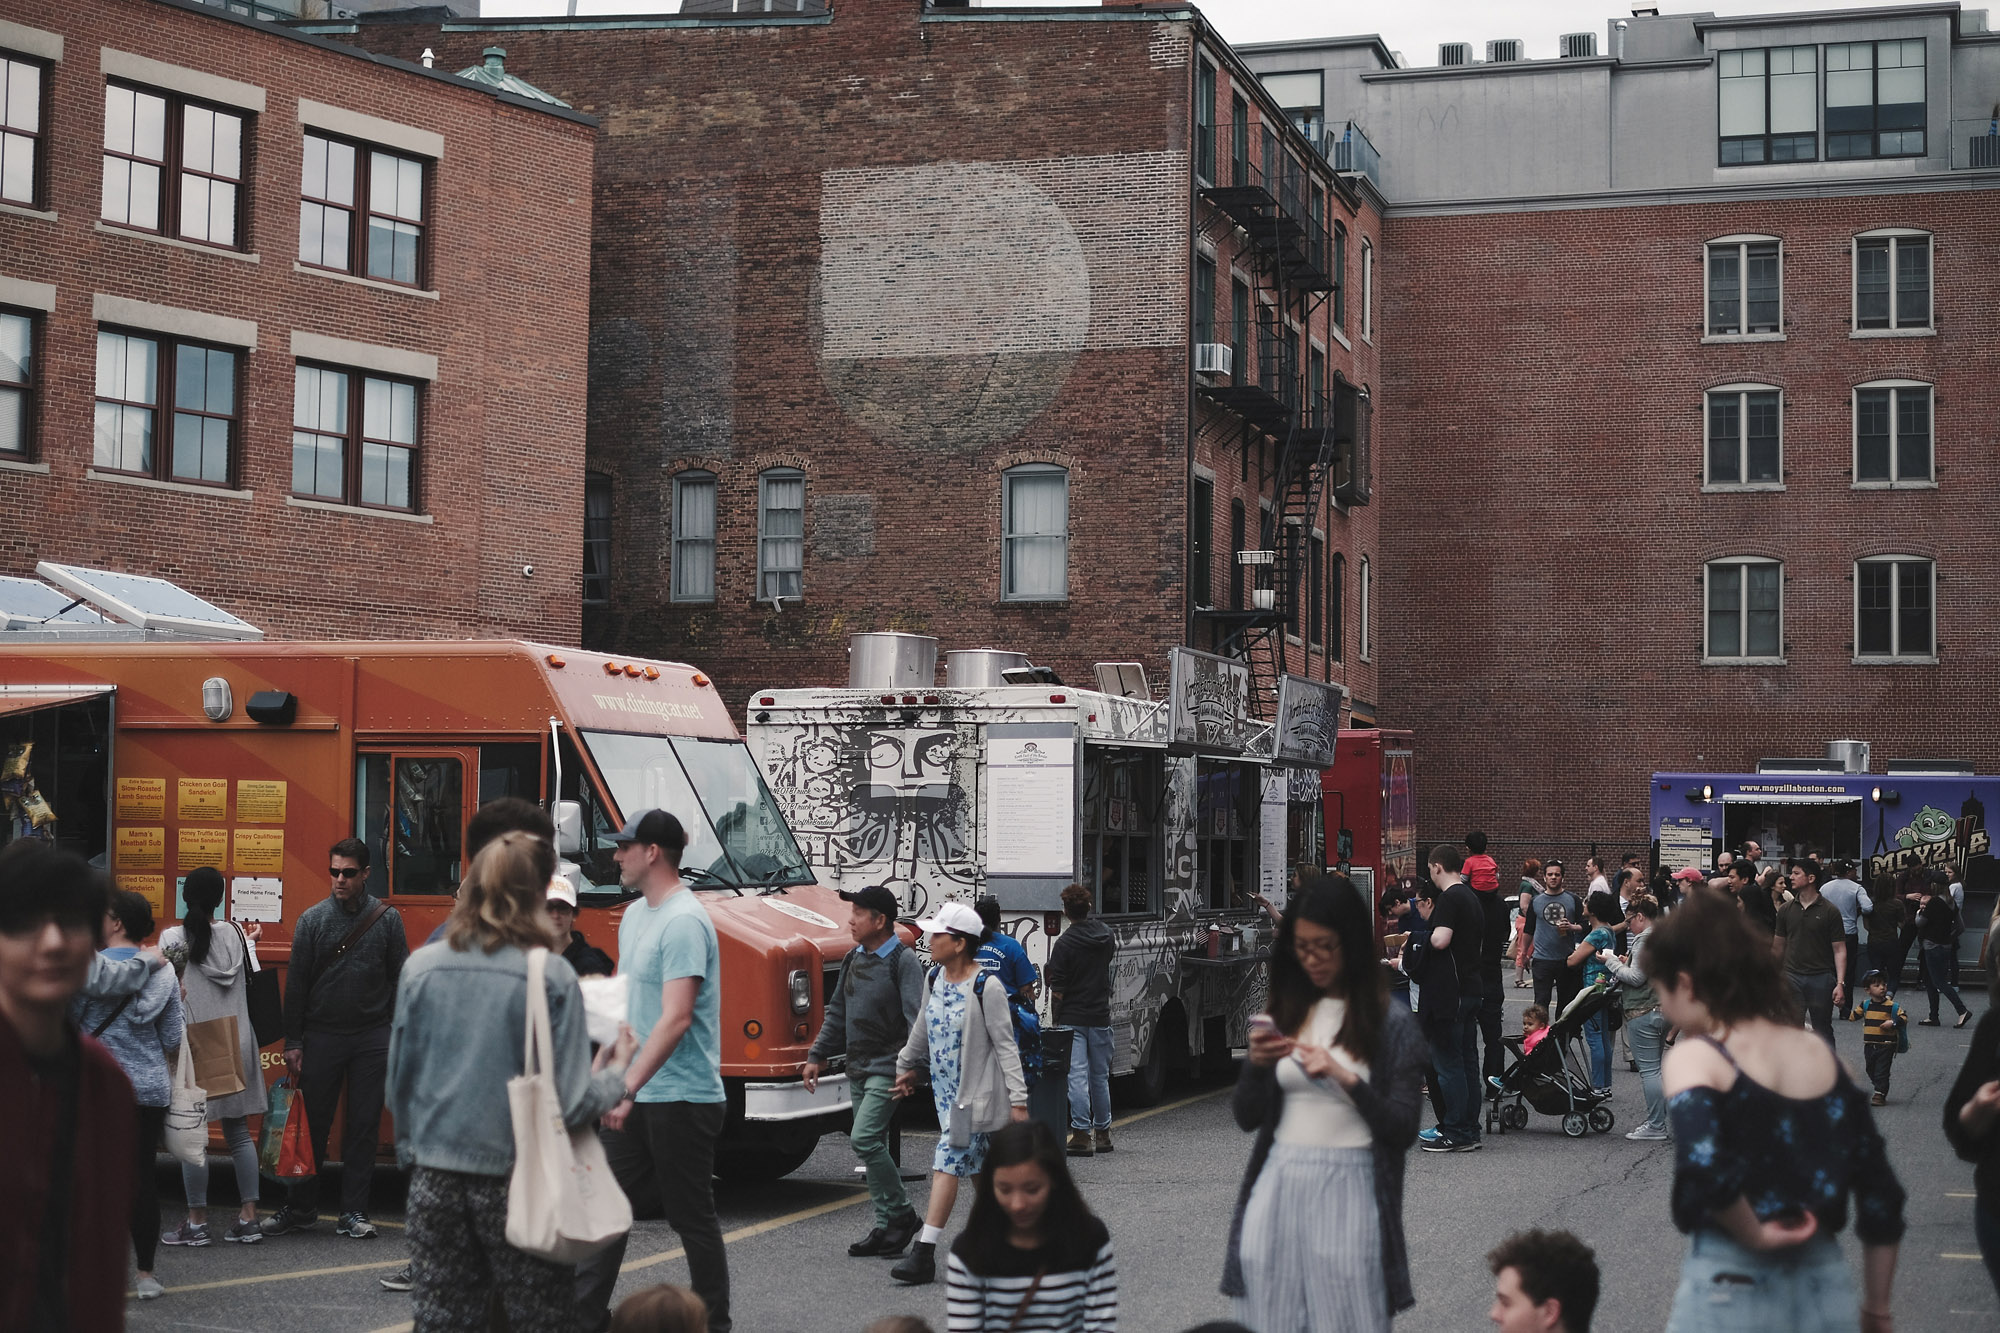 The food trucks get busy. Get there early (like I did) to avoid the lines.